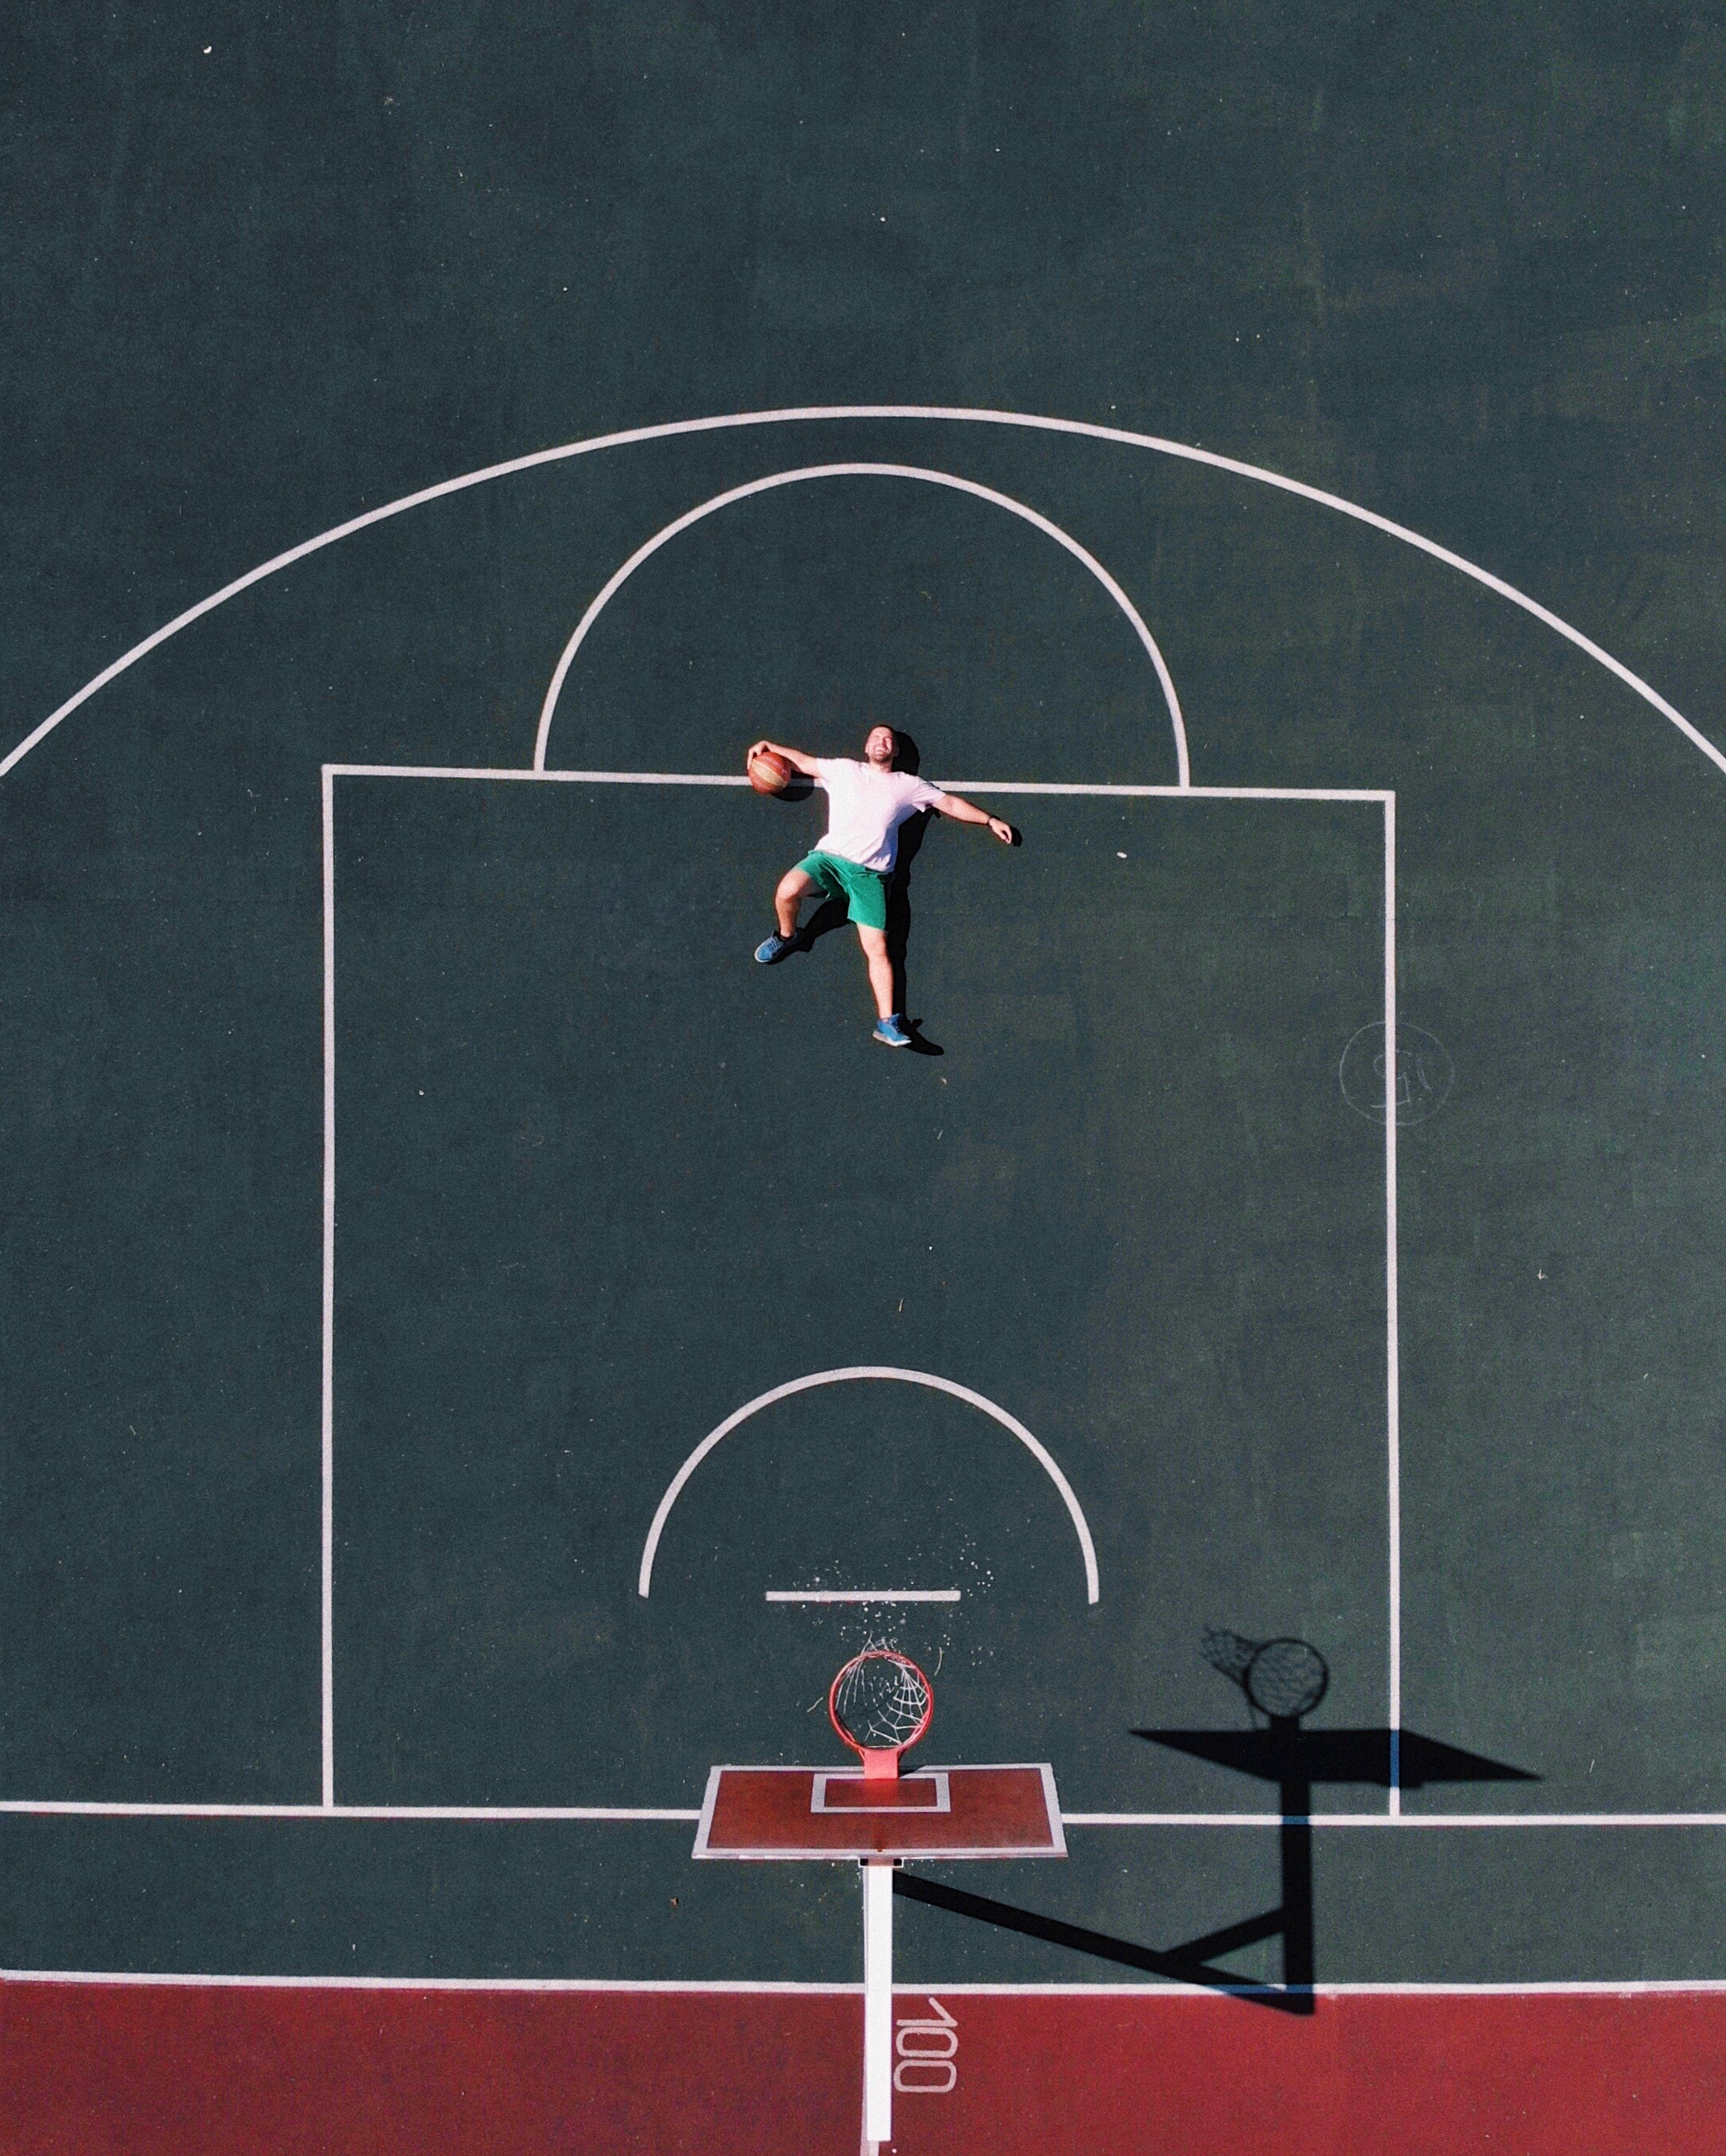 125946 Screensavers and Wallpapers Basketball for phone. Download Sports, Basketball Playground, Basketball Court, Basketball Player, View From Above, Basketball, Playground, Platform pictures for free